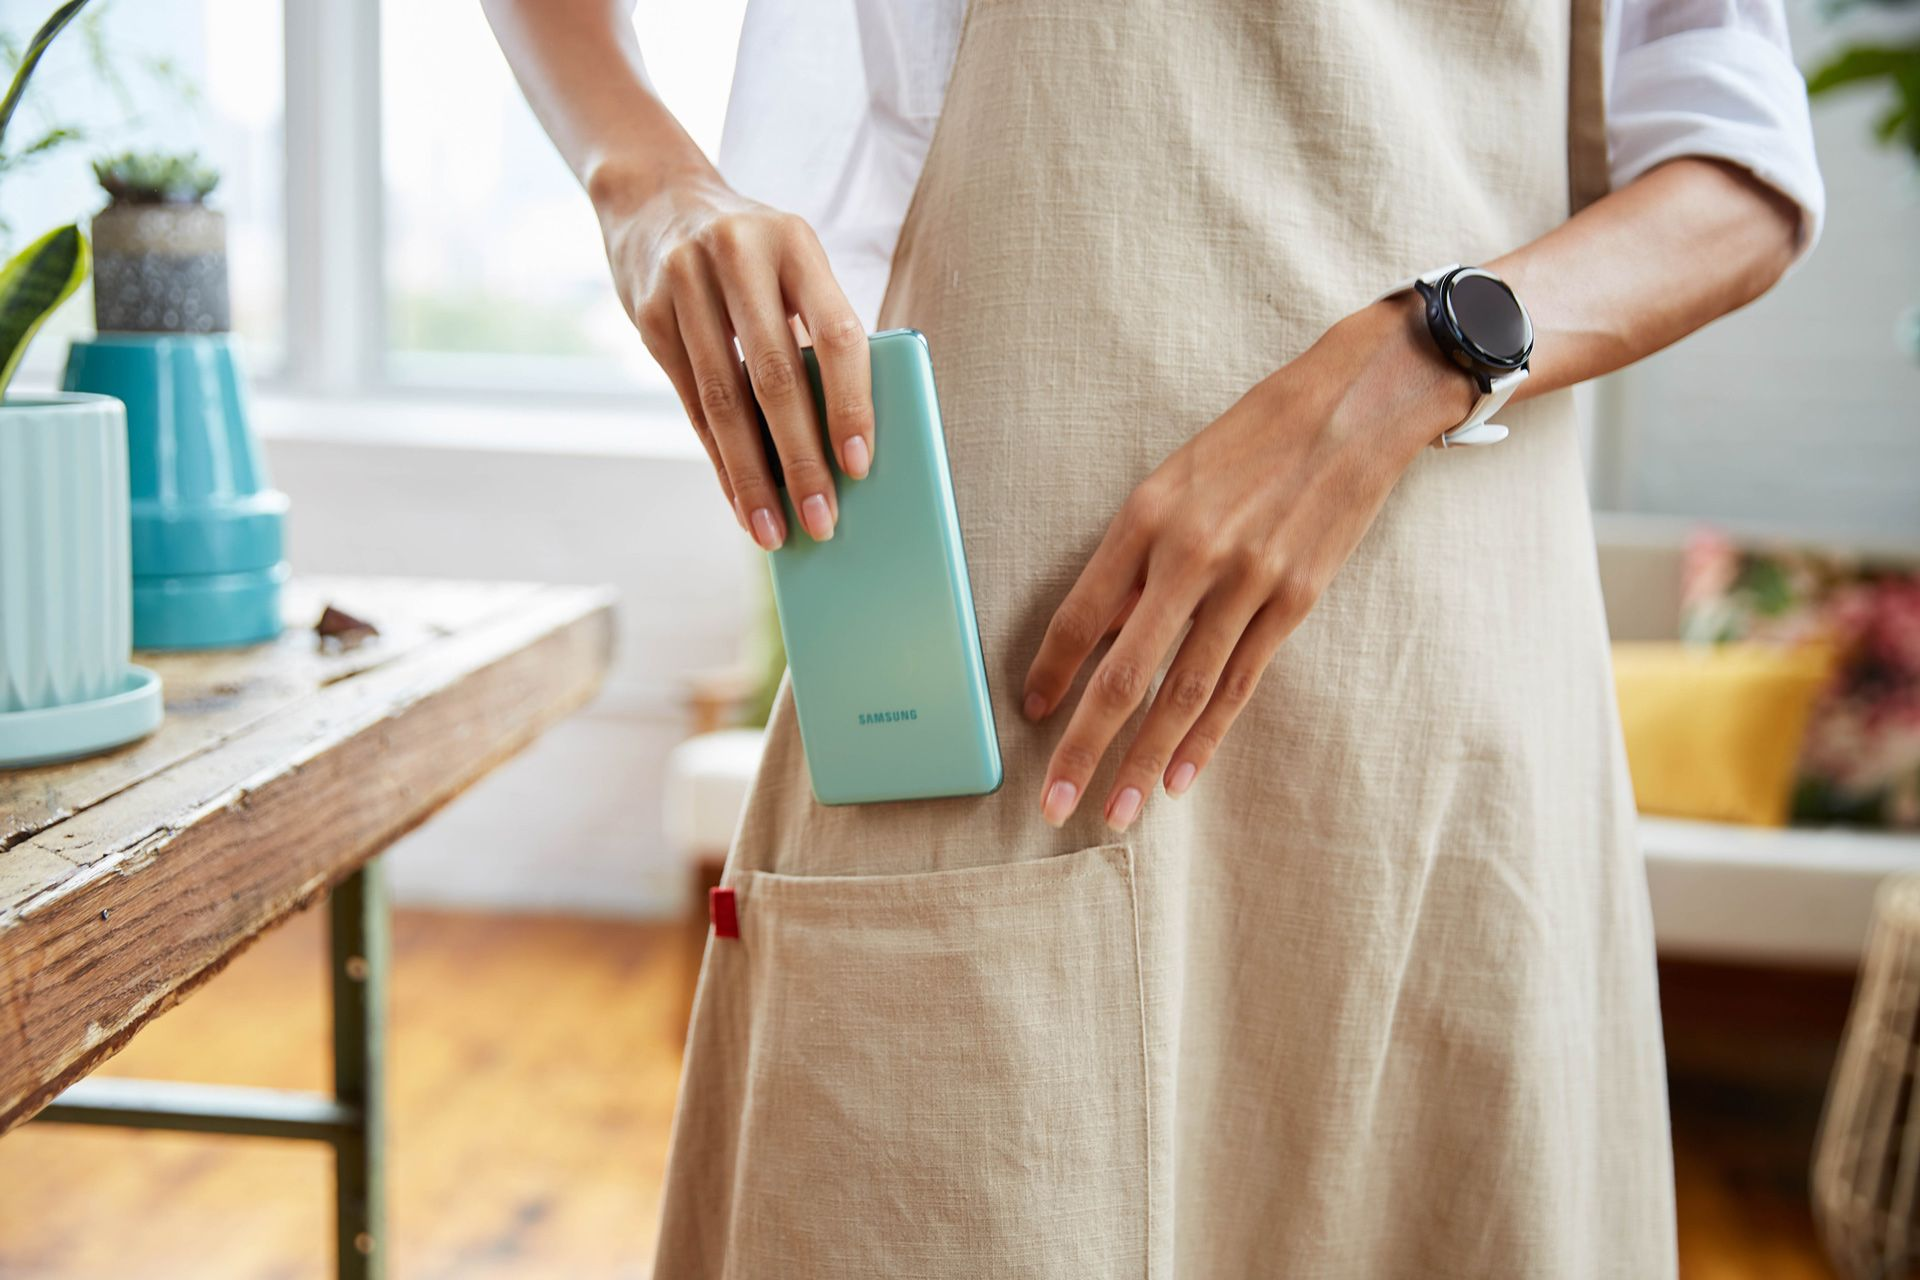 female model wearing beige apron and white shirt putting turquoise smartphone inside apron's pocket photographed by Oumayma B Tanfous for Samsung phone campaign